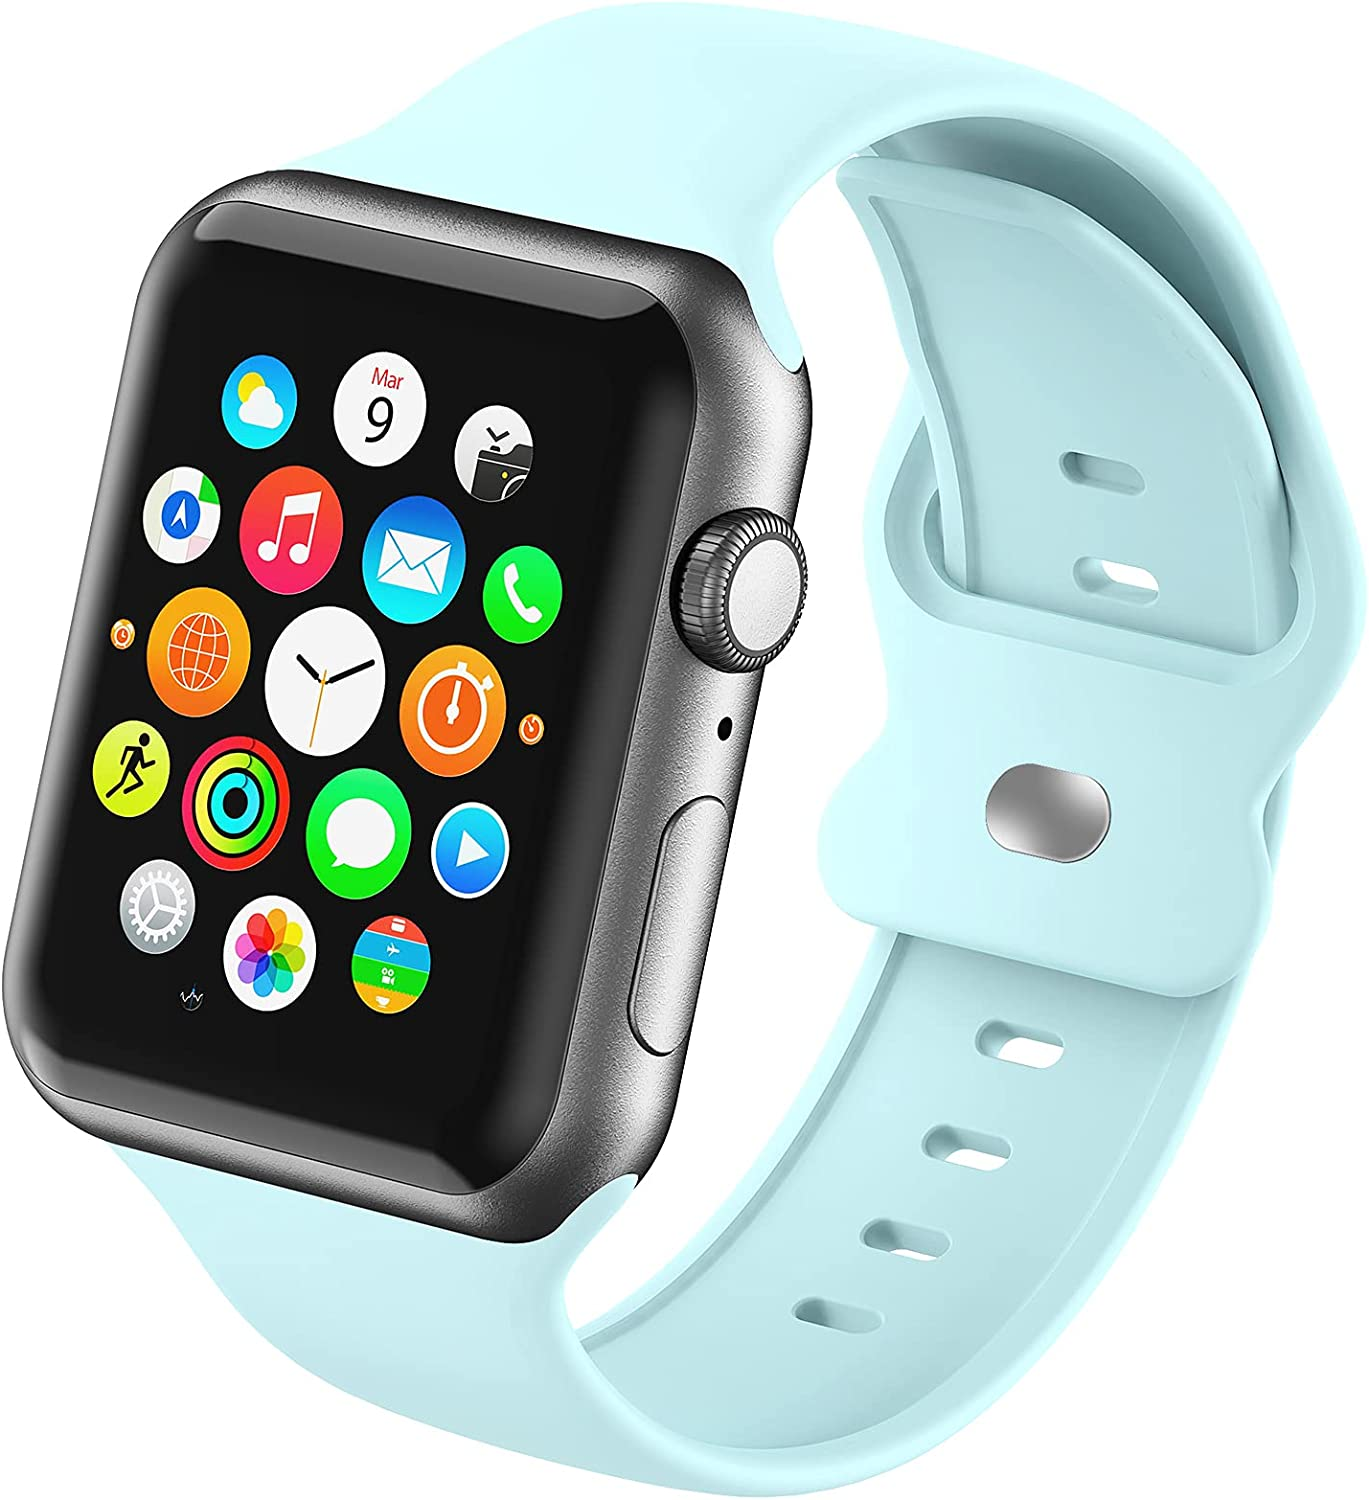 Sport Smartwatch Band Compatible with Apple Watch Bands 38mm 40mm 42mm 44mm for Women Girls Men,Soft Silicone Replacement Wristband for iWatch Series 6 5 4 3 2 1 SE Strap